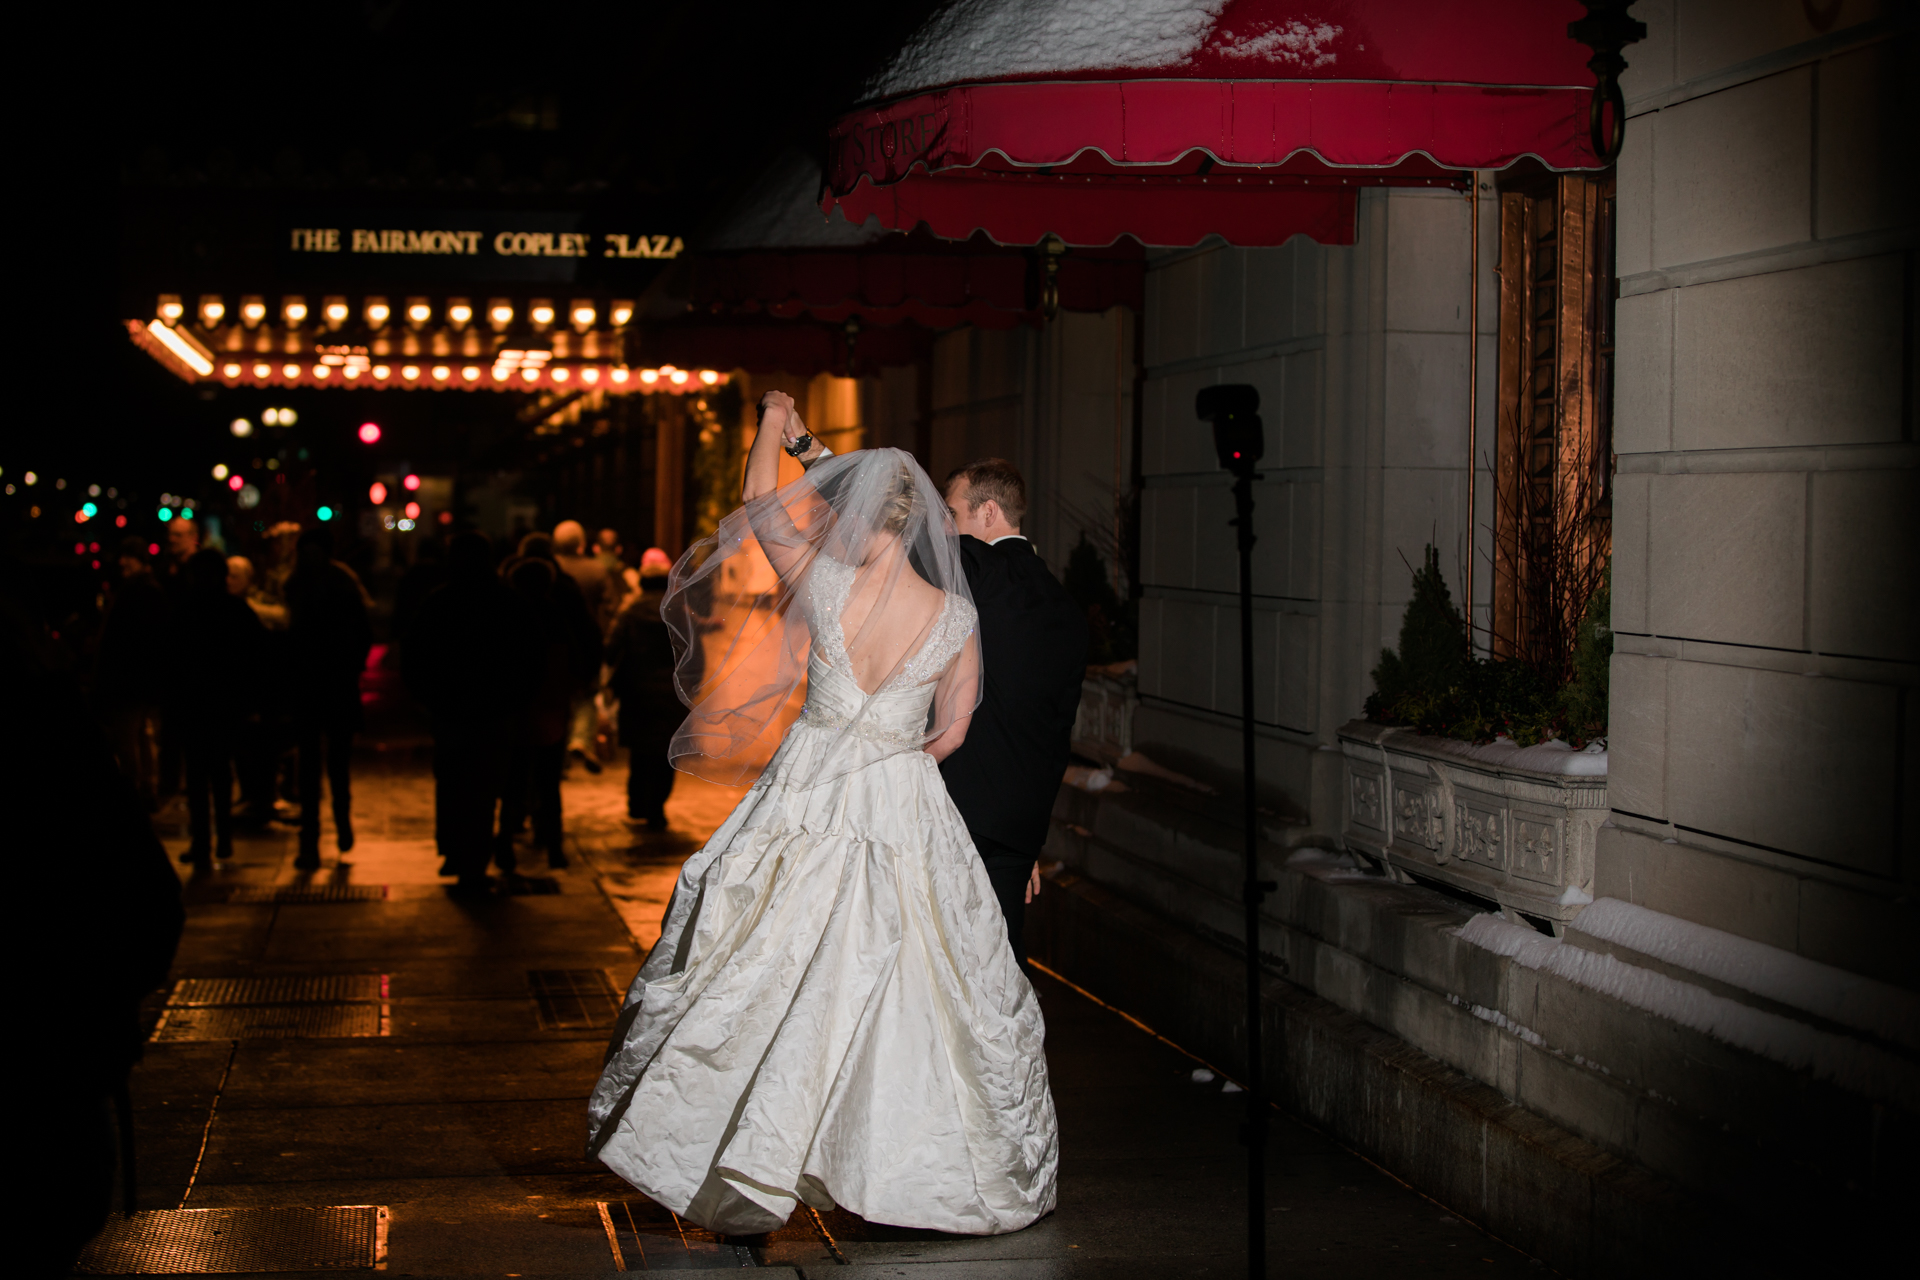 Boston-Fairmont-Copley-Plaza-Wedding-AmandaMorgan-Photography-79.jpg